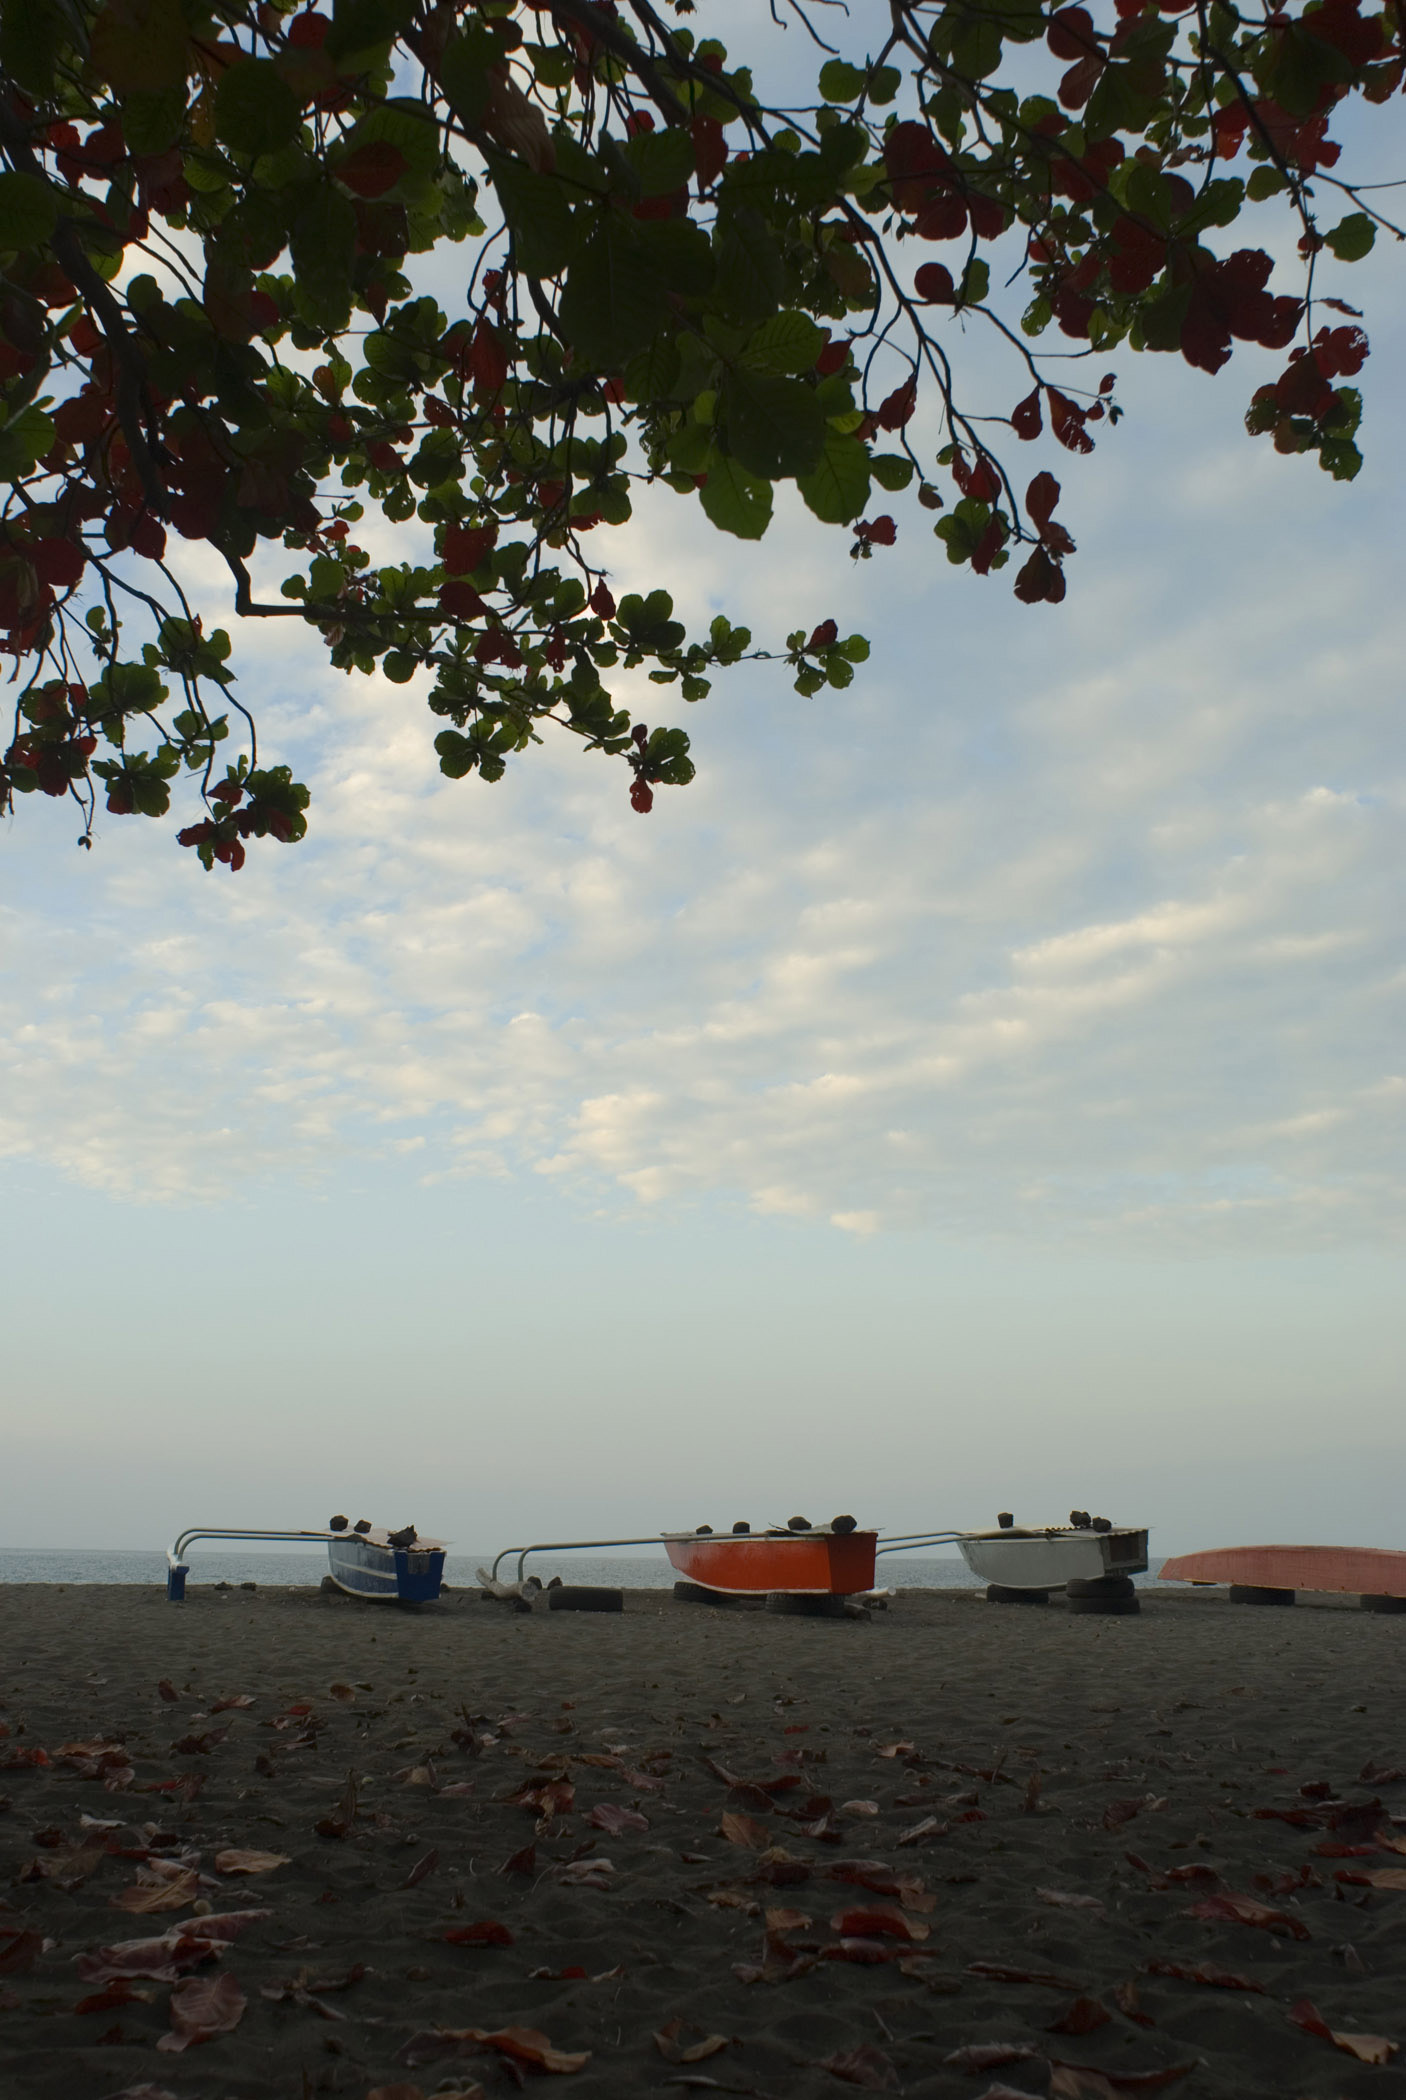 Outrigger Canoes Lined Up on Deserted Beach